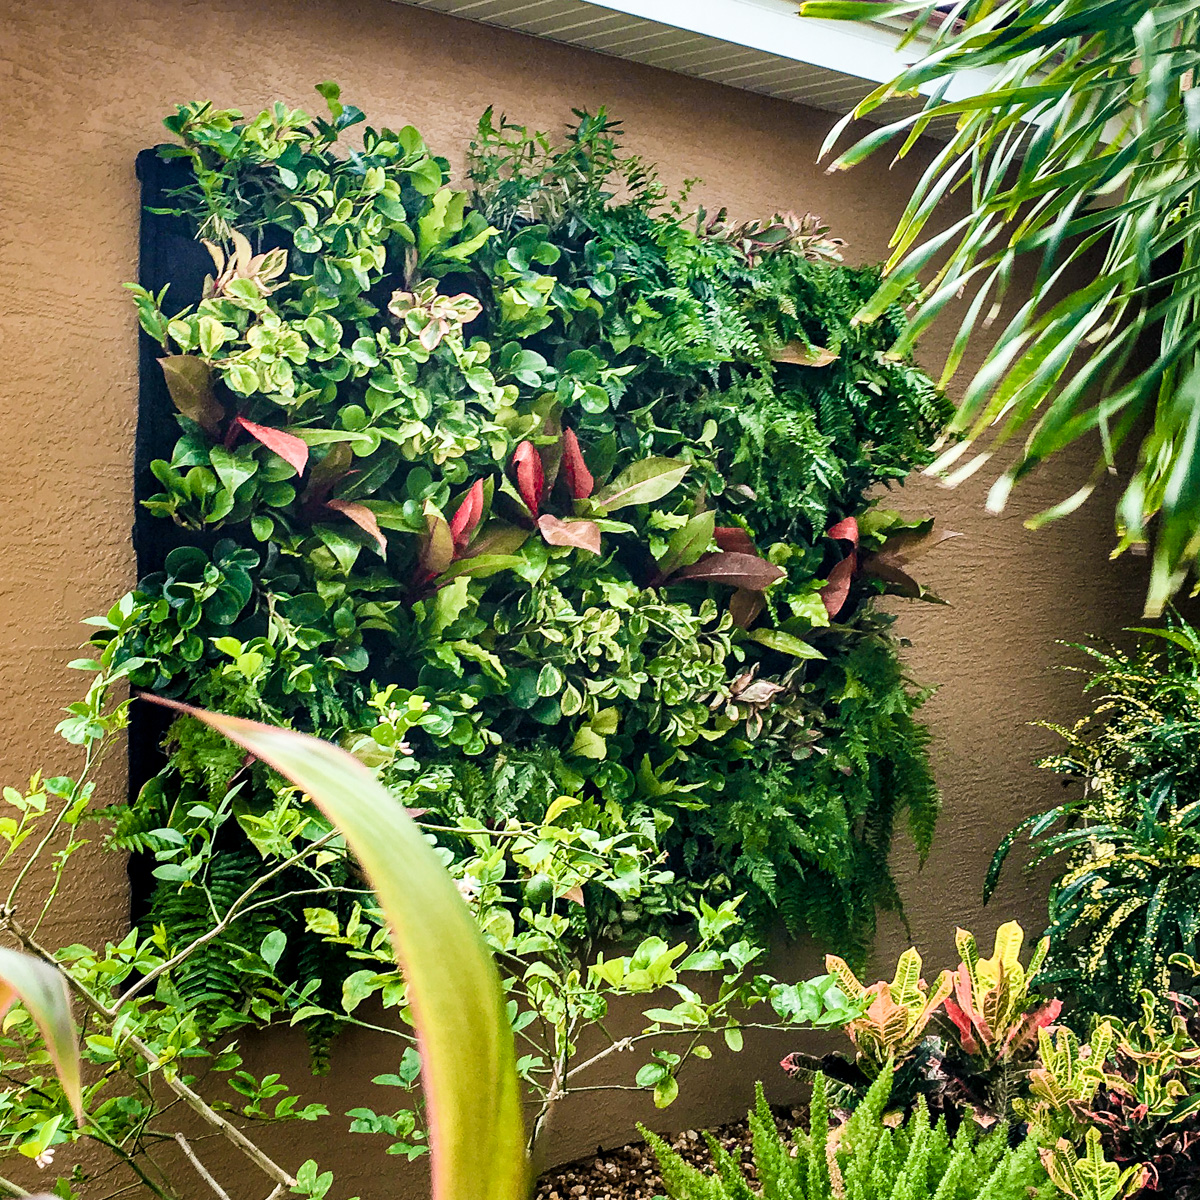 A Florafelt vertical garden by Seth Stottlemyer of Oasis Gardenscapes welcomes visitors to this Florida residence.